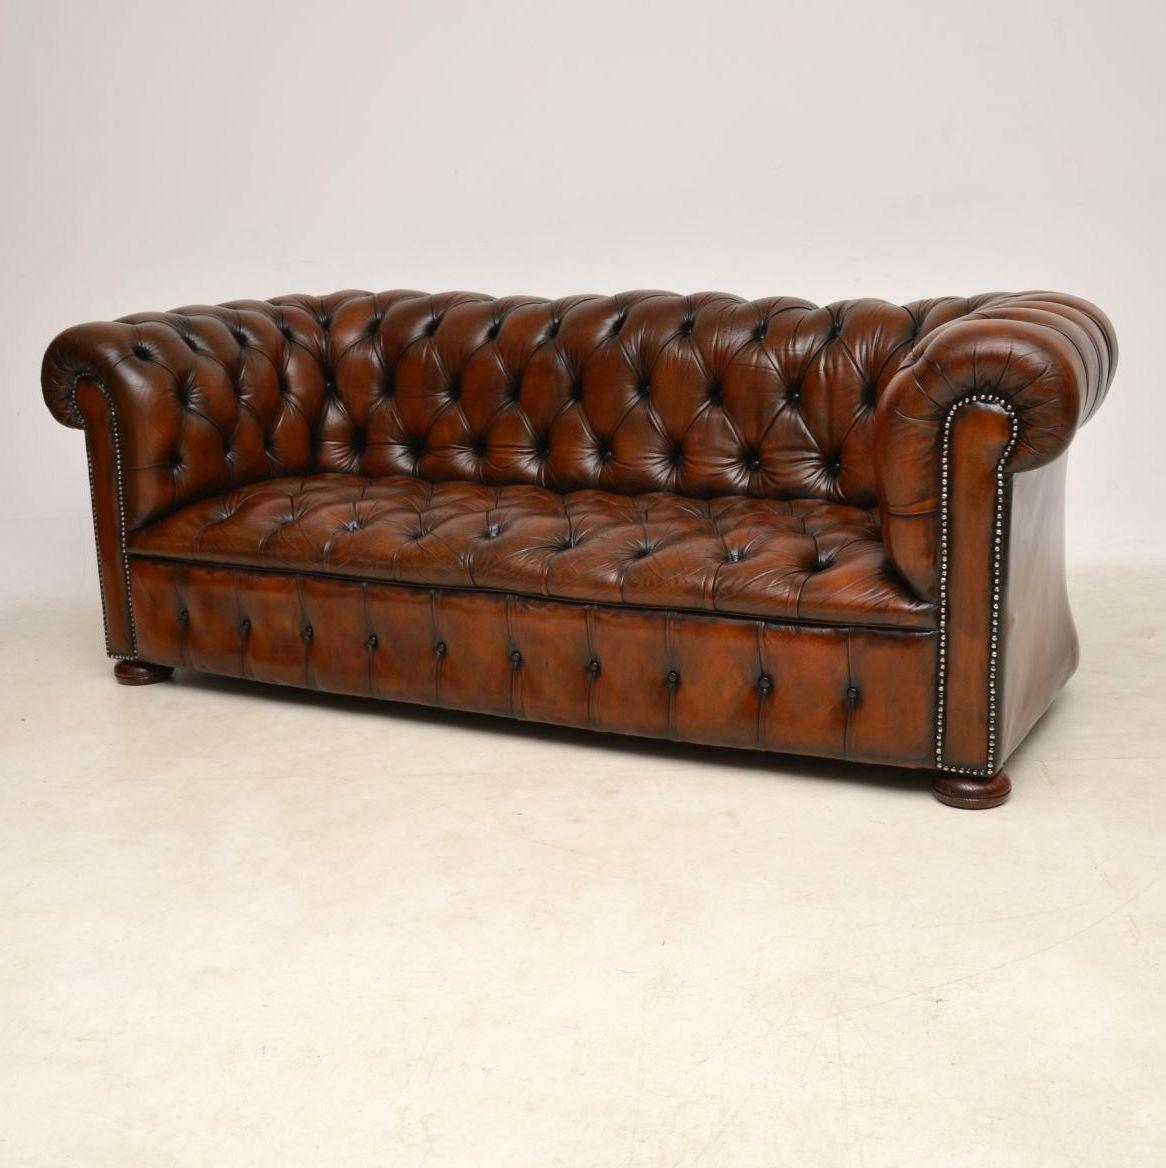 Delicieux Edwardian Antique Deep Buttoned Leather Chesterfield Sofa For Sale